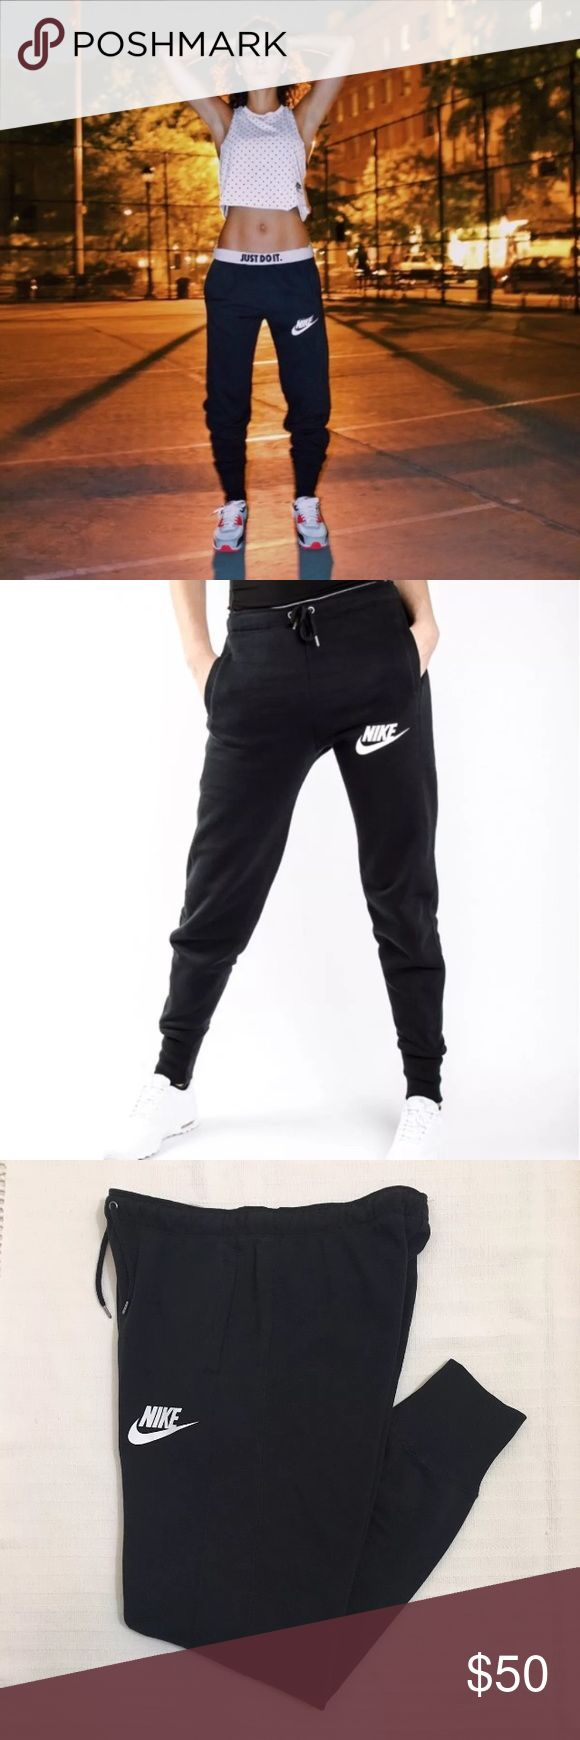 Women's Nike Black Rally Jogger Sweatpants Women's Nike Black Rally Jogger Sweatpants will keep you warm and cozy. Their cotton blend and brushed interior create a soft, comfortable feel, while the profile gives these pants a streamlined look. Materials: 80% cotton, 20% polyester Style/Color: 718823-011  • Women's size Small  • NEW with tags • No trades •100% authentic Nike Pants Track Pants & Joggers